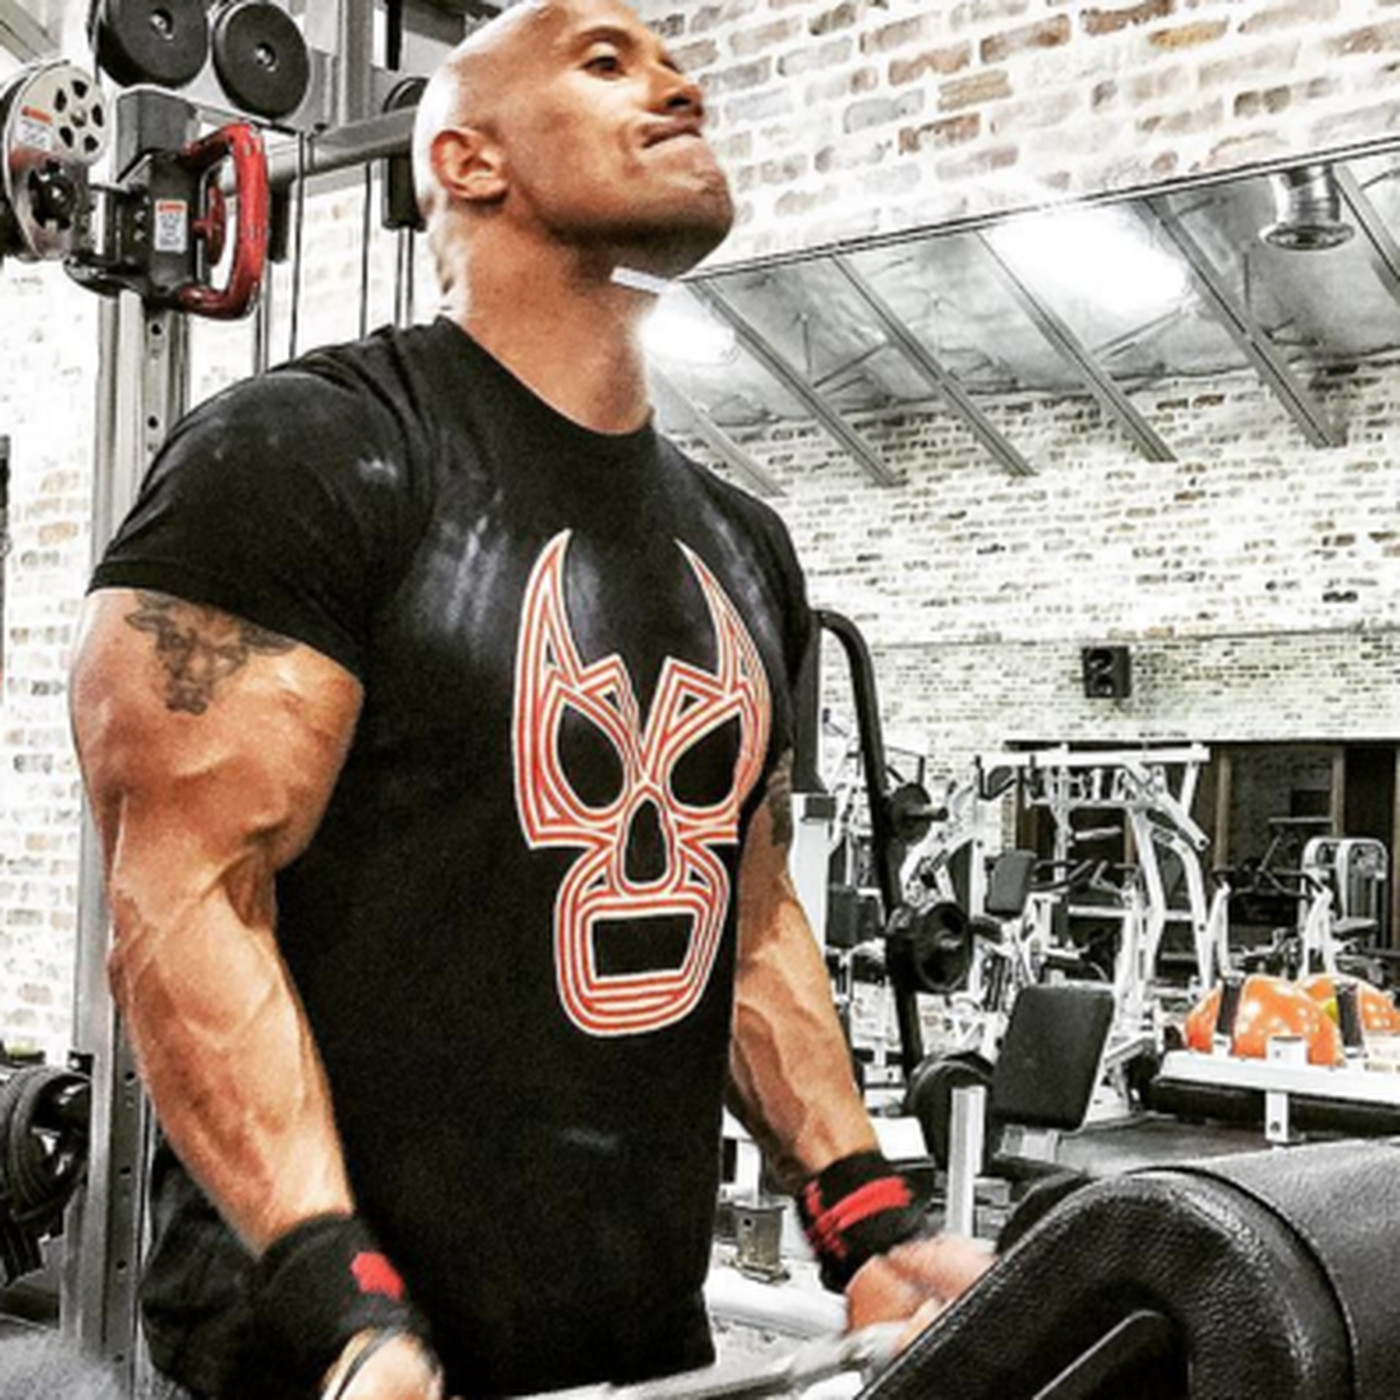 46f2301c The Rock represents Lucha Underground at the gym, on Instagram - Cageside  Seats